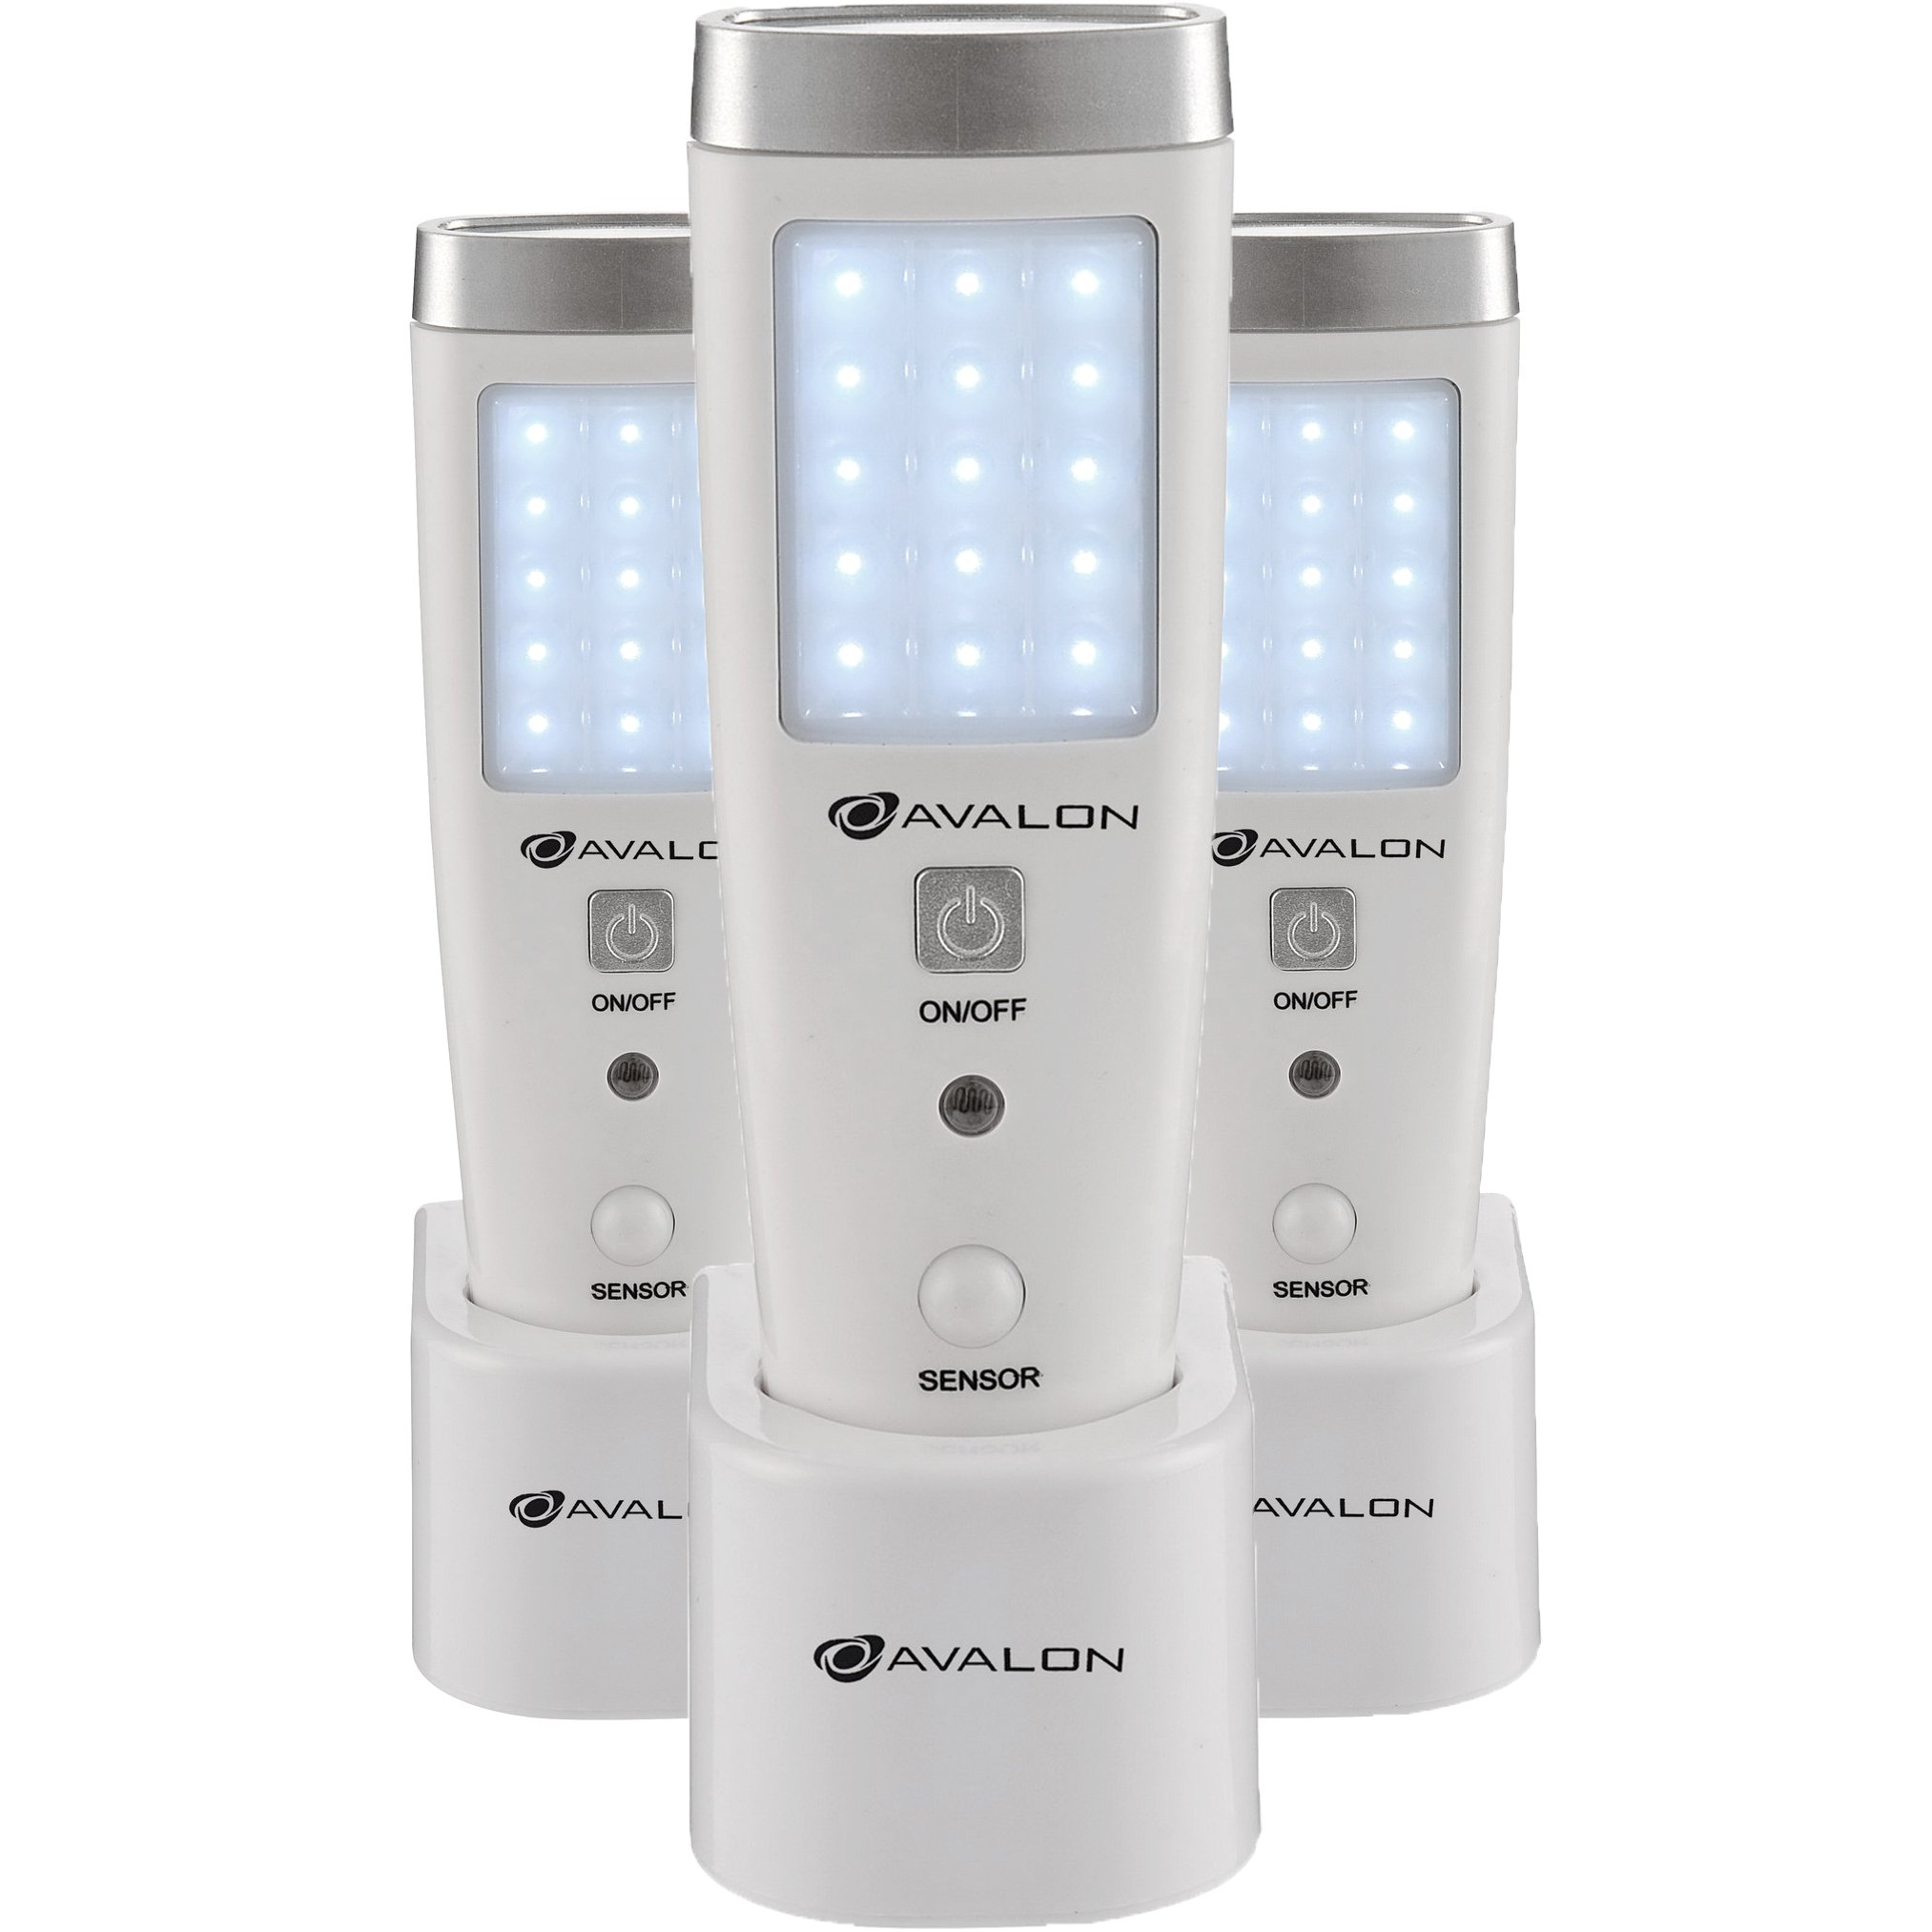 Avalon LED Flashlight Night Light for Emergency Preparedness Portable Unit with Motion DetectionPower  sc 1 st  Amazon.com & Best Rated in Commercial Emergency Light Fixtures u0026 Helpful ... azcodes.com